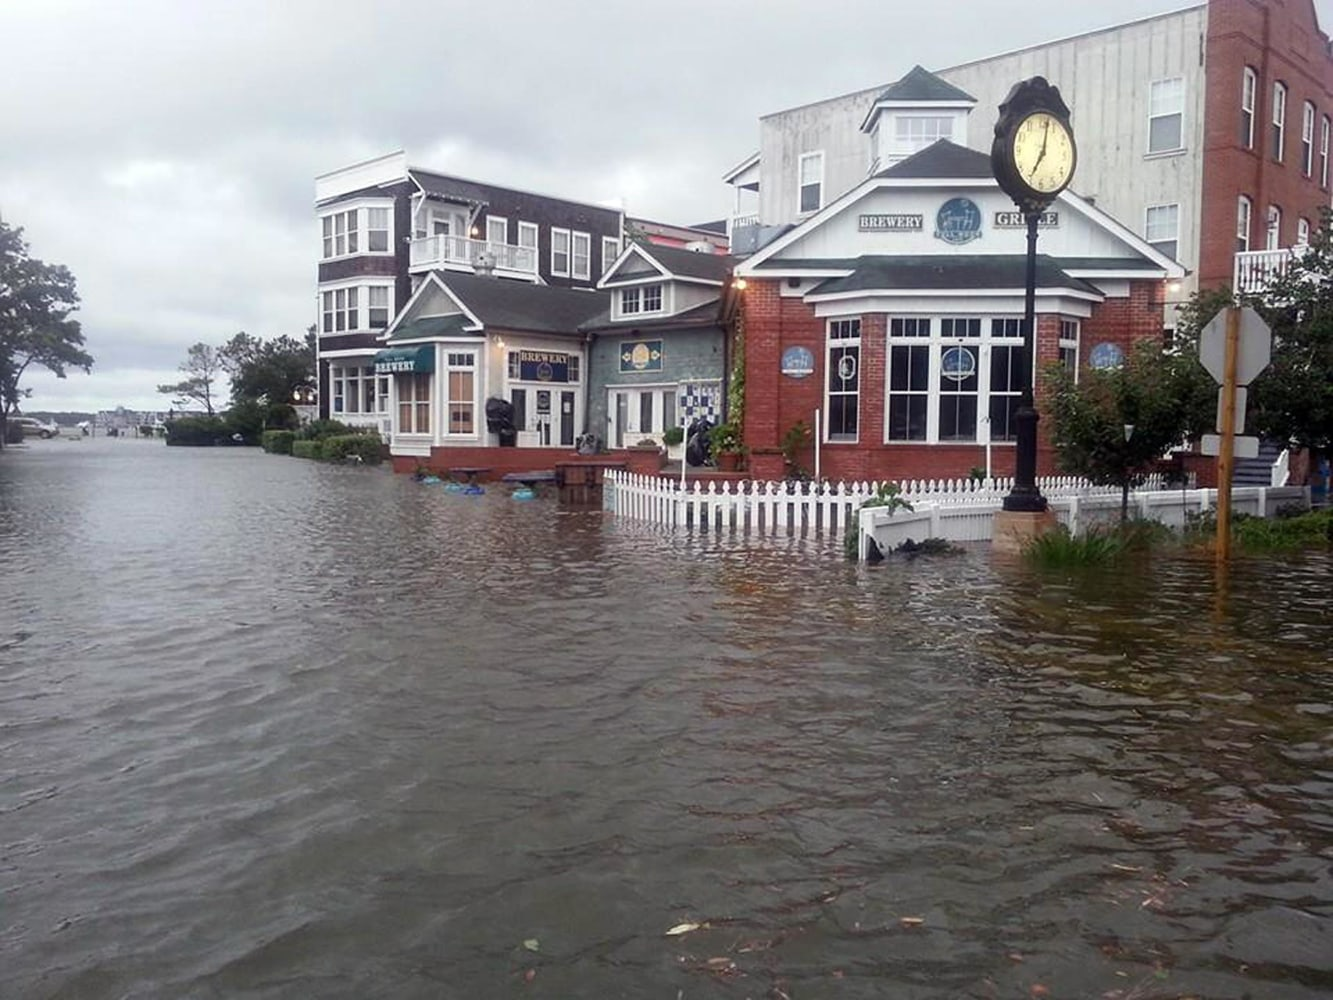 Hurricane Arthur Leaves North Carolina Town Partly Flooded ...